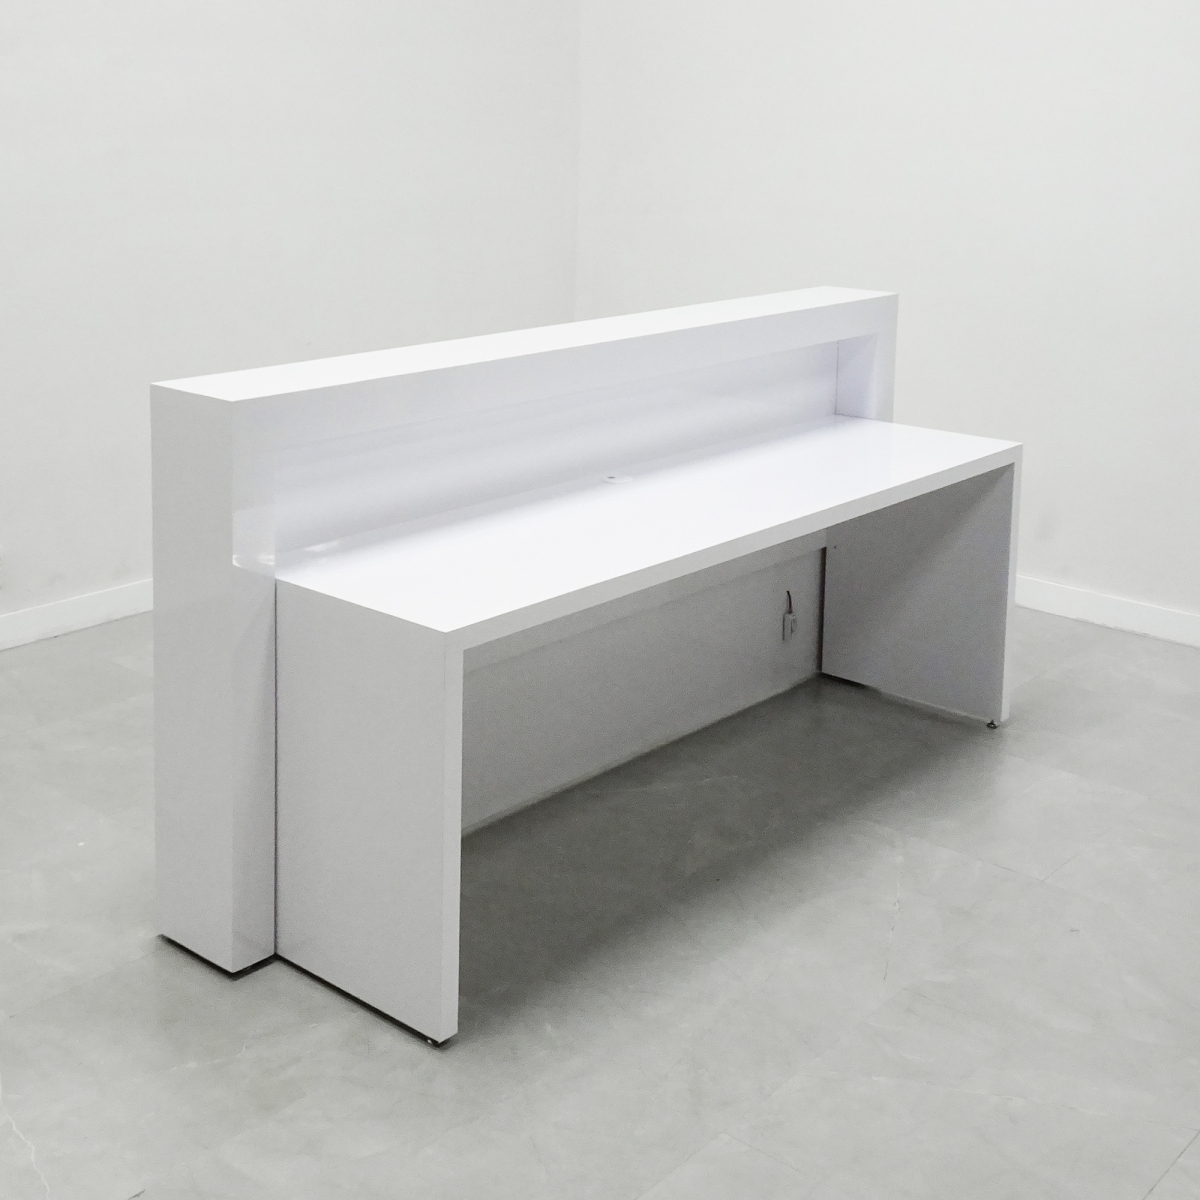 48 In. New York Reception Desk in White Gloss Laminate